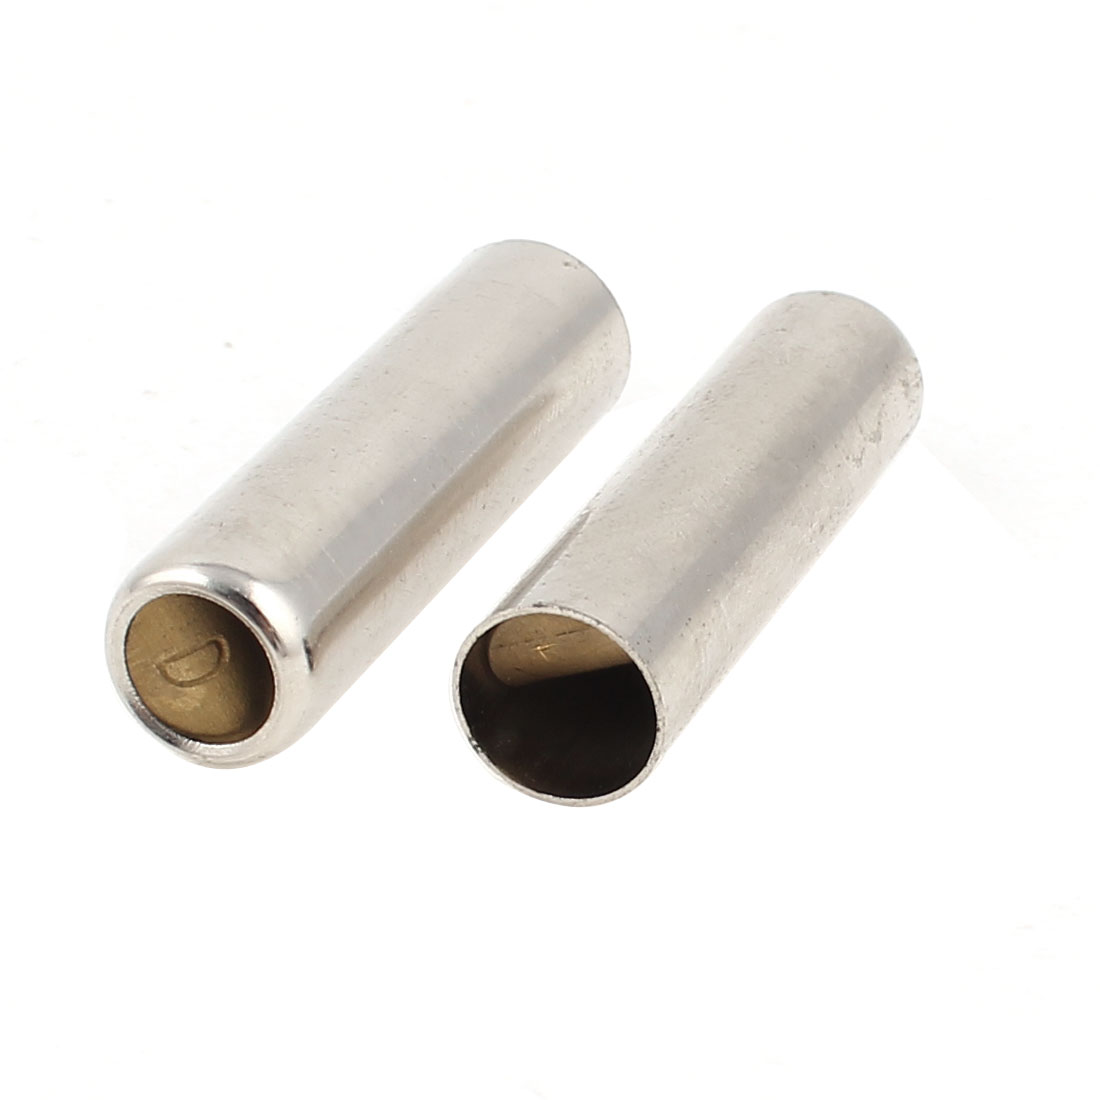 2 Pcs Metal Whistle Sound Tubing Pipe Silver Tone 10x36mm